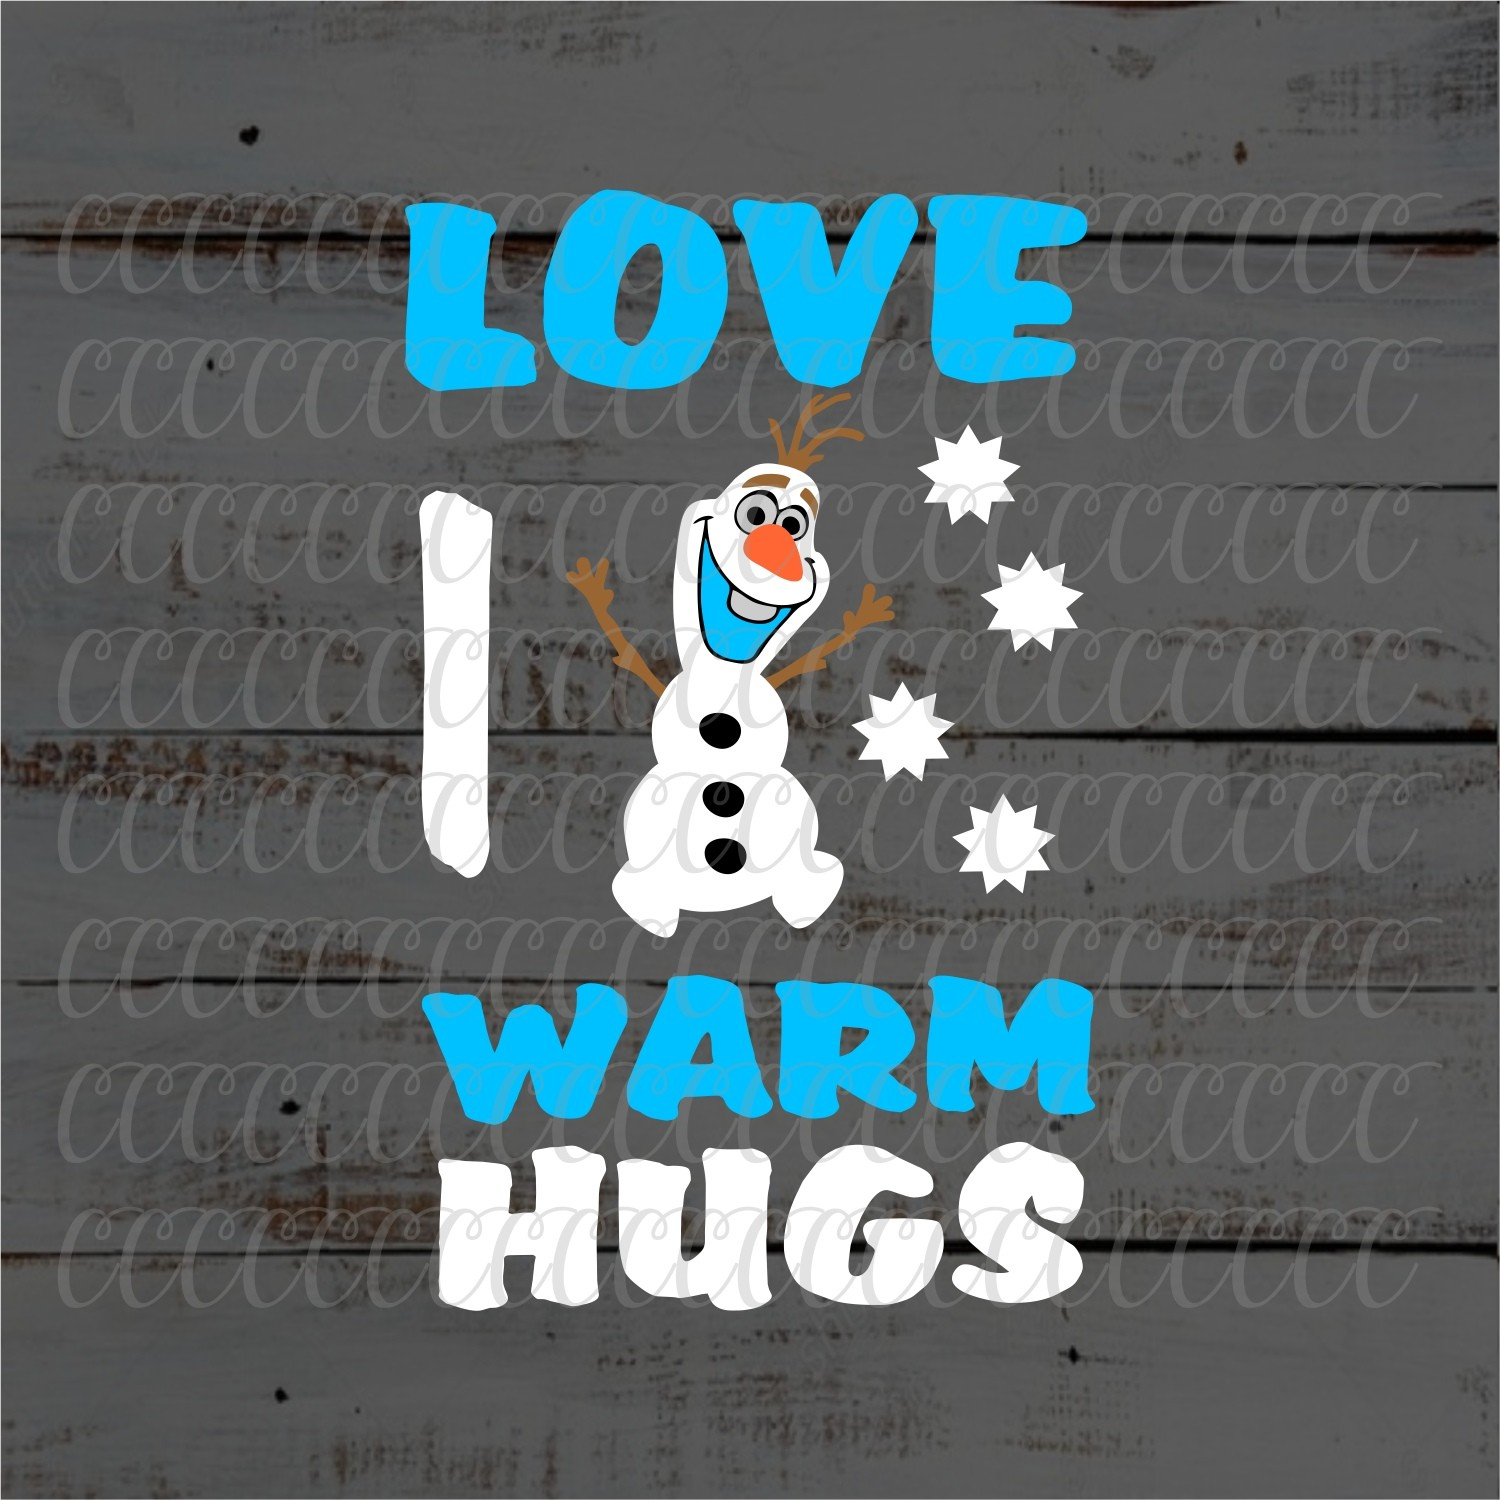 Olaf i like warm hugs svg clipart clip art royalty free library Olaf,Love Warm Hugs,Olaf SVG,Christmas svg,Elsa svg,I Love Warm Hugs  svg,Olaf Designs,Olaf Shirt,Olaf Tshirt,Cricut Design,Silhouette Design clip art royalty free library